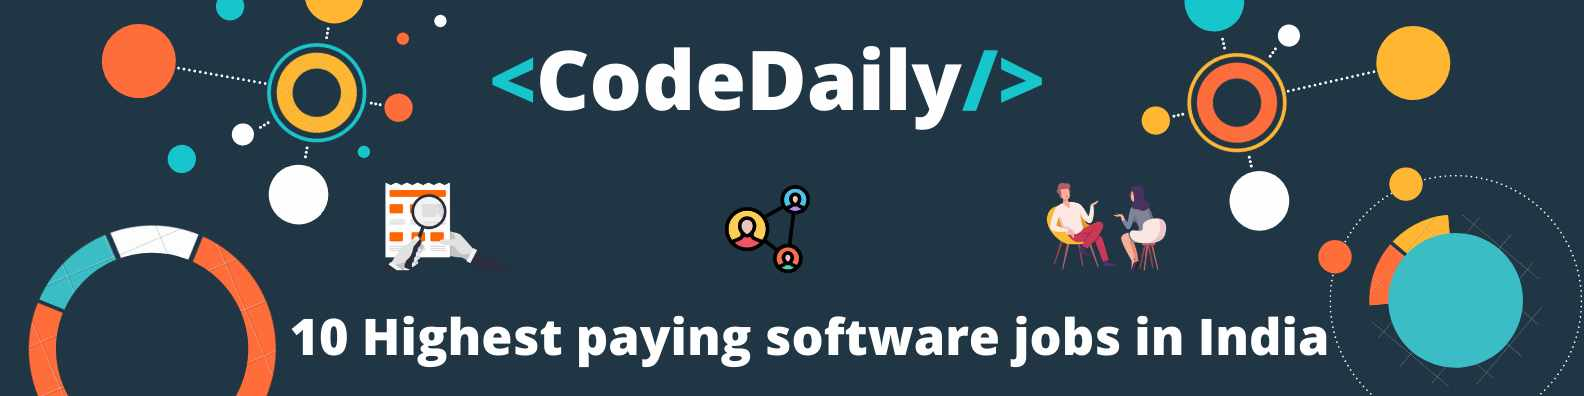 10 Highest paying software jobs in India - CodeDaily